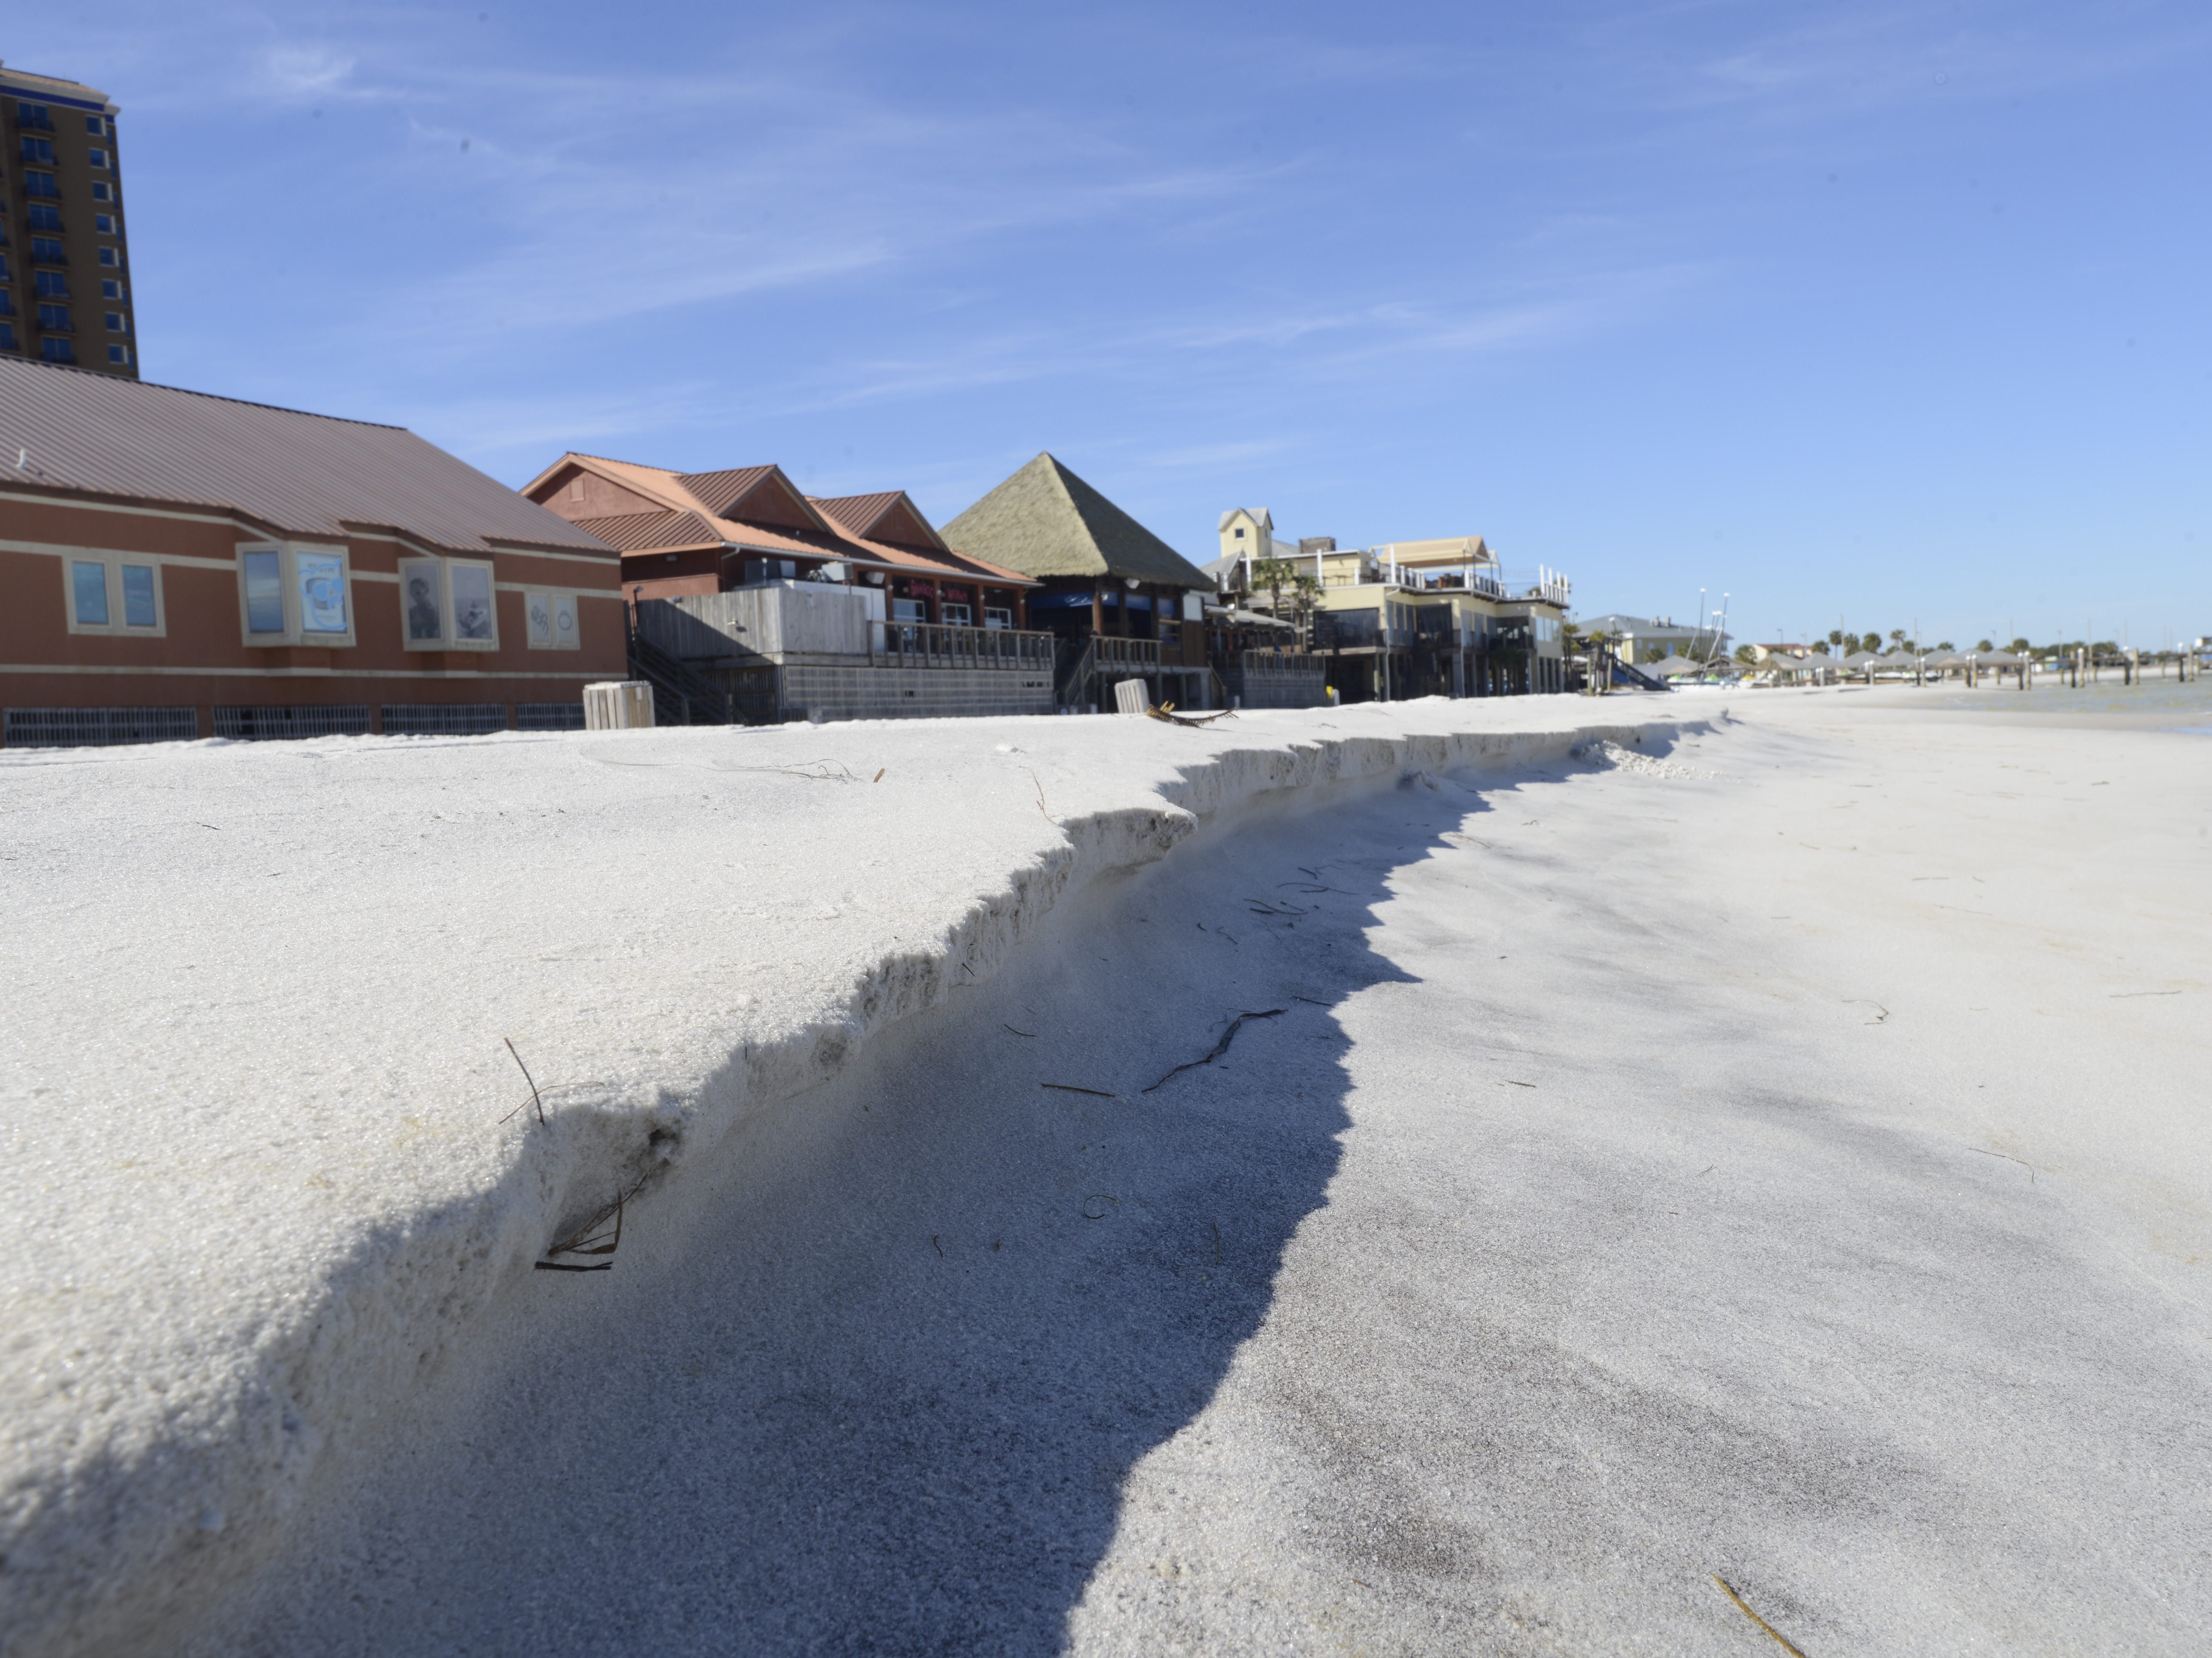 Beach leaders plan to widen Little Sabine and use spoils to renourish Quietwater Beach, the busy beach area behind the Boardwalk Shopping Center.